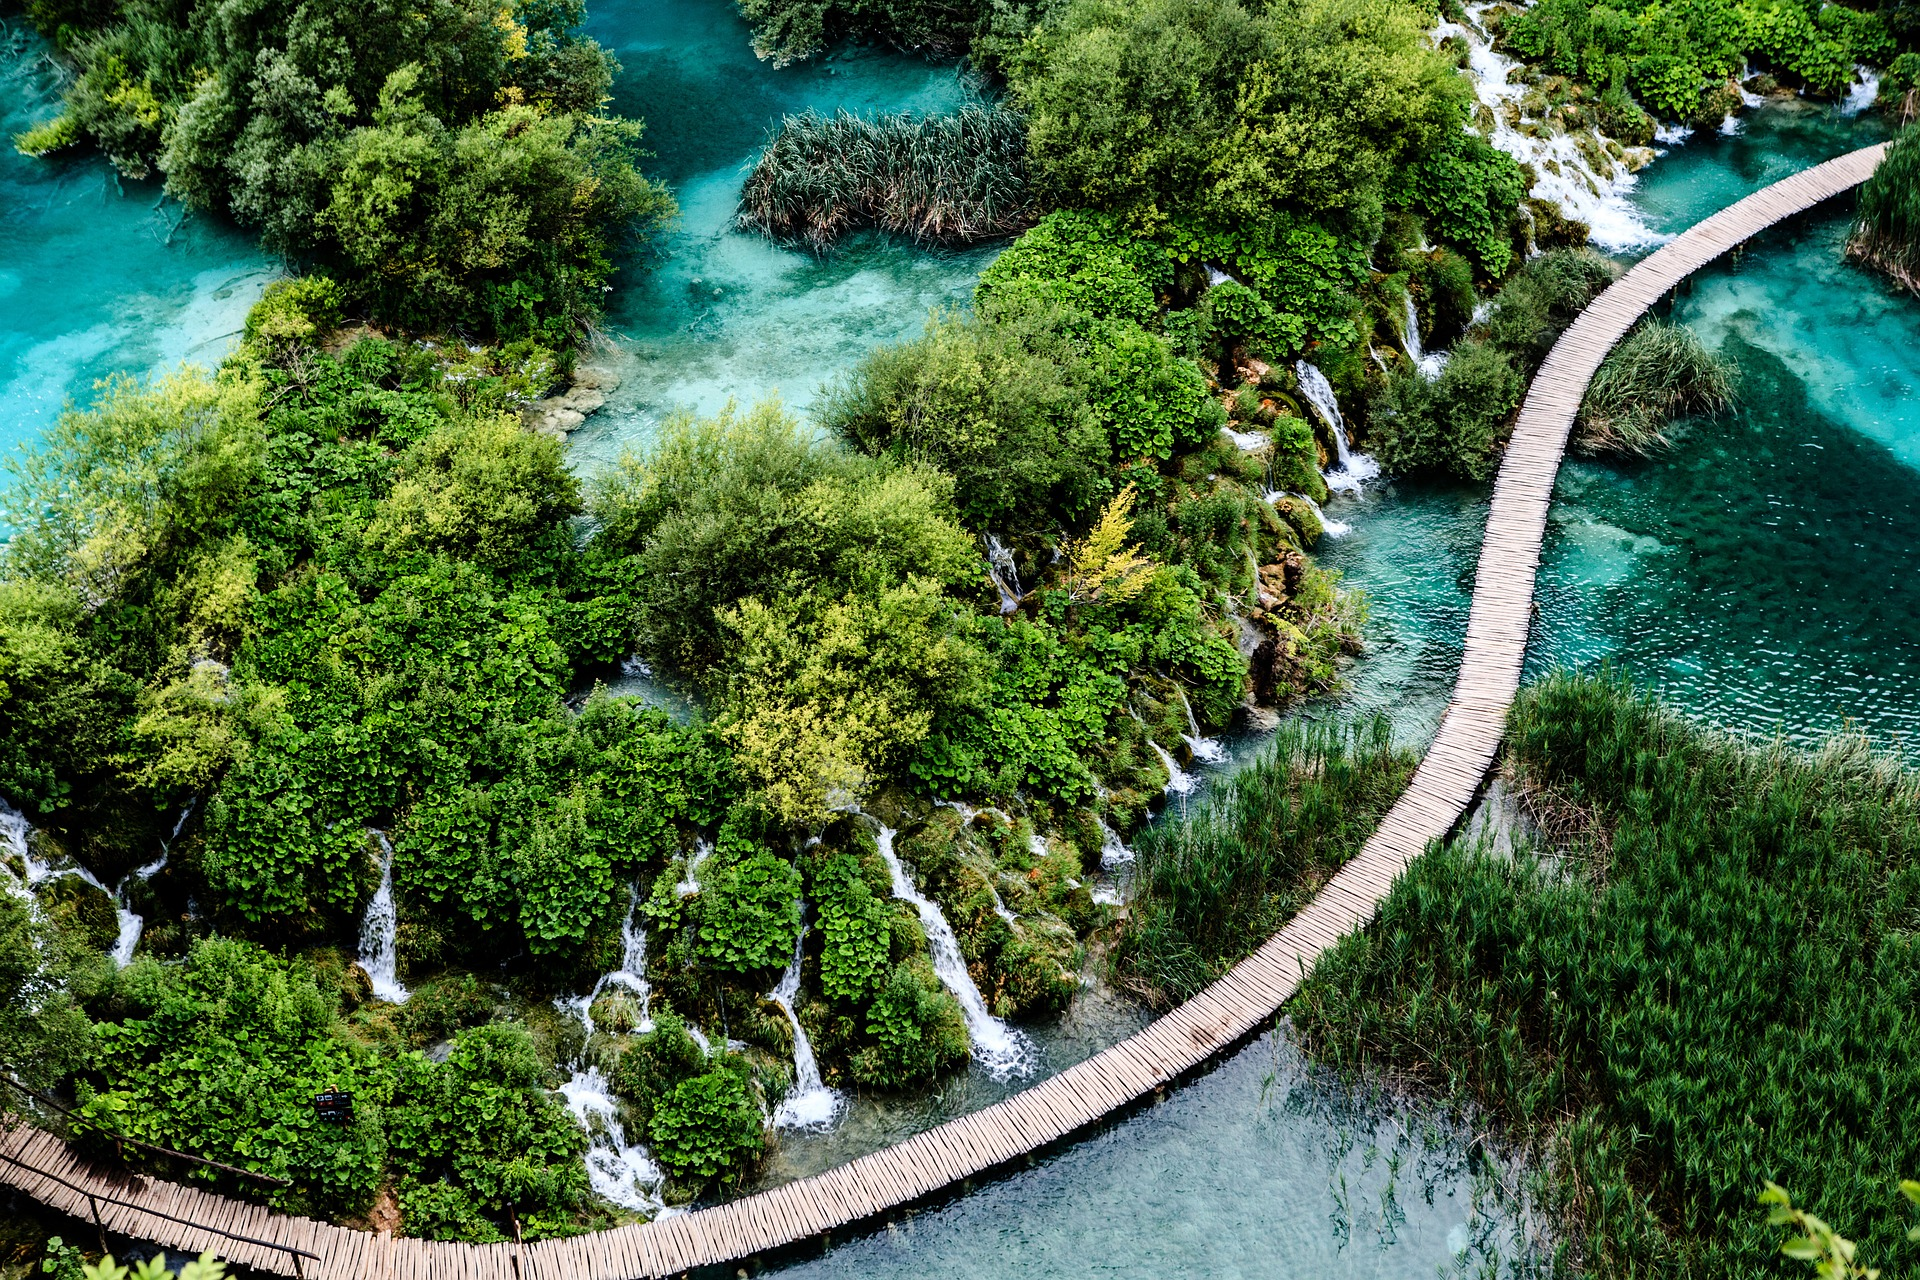 Lakes and greenery from above at Plitvice Lakes